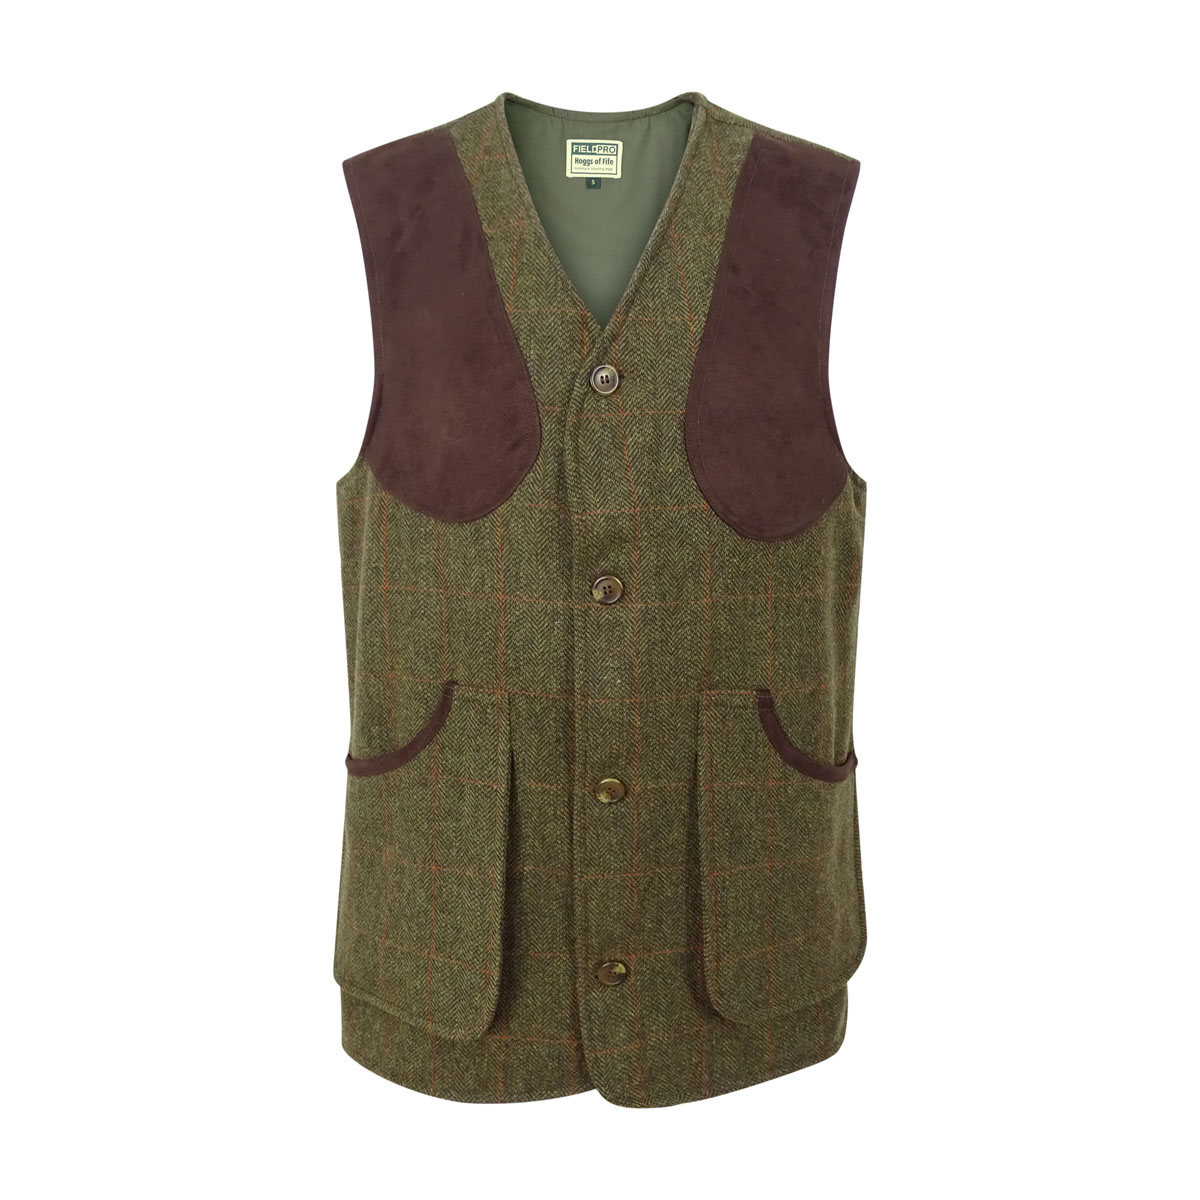 Hoggs of Fife - Harewood Lambswool Tweed Shooting Vest